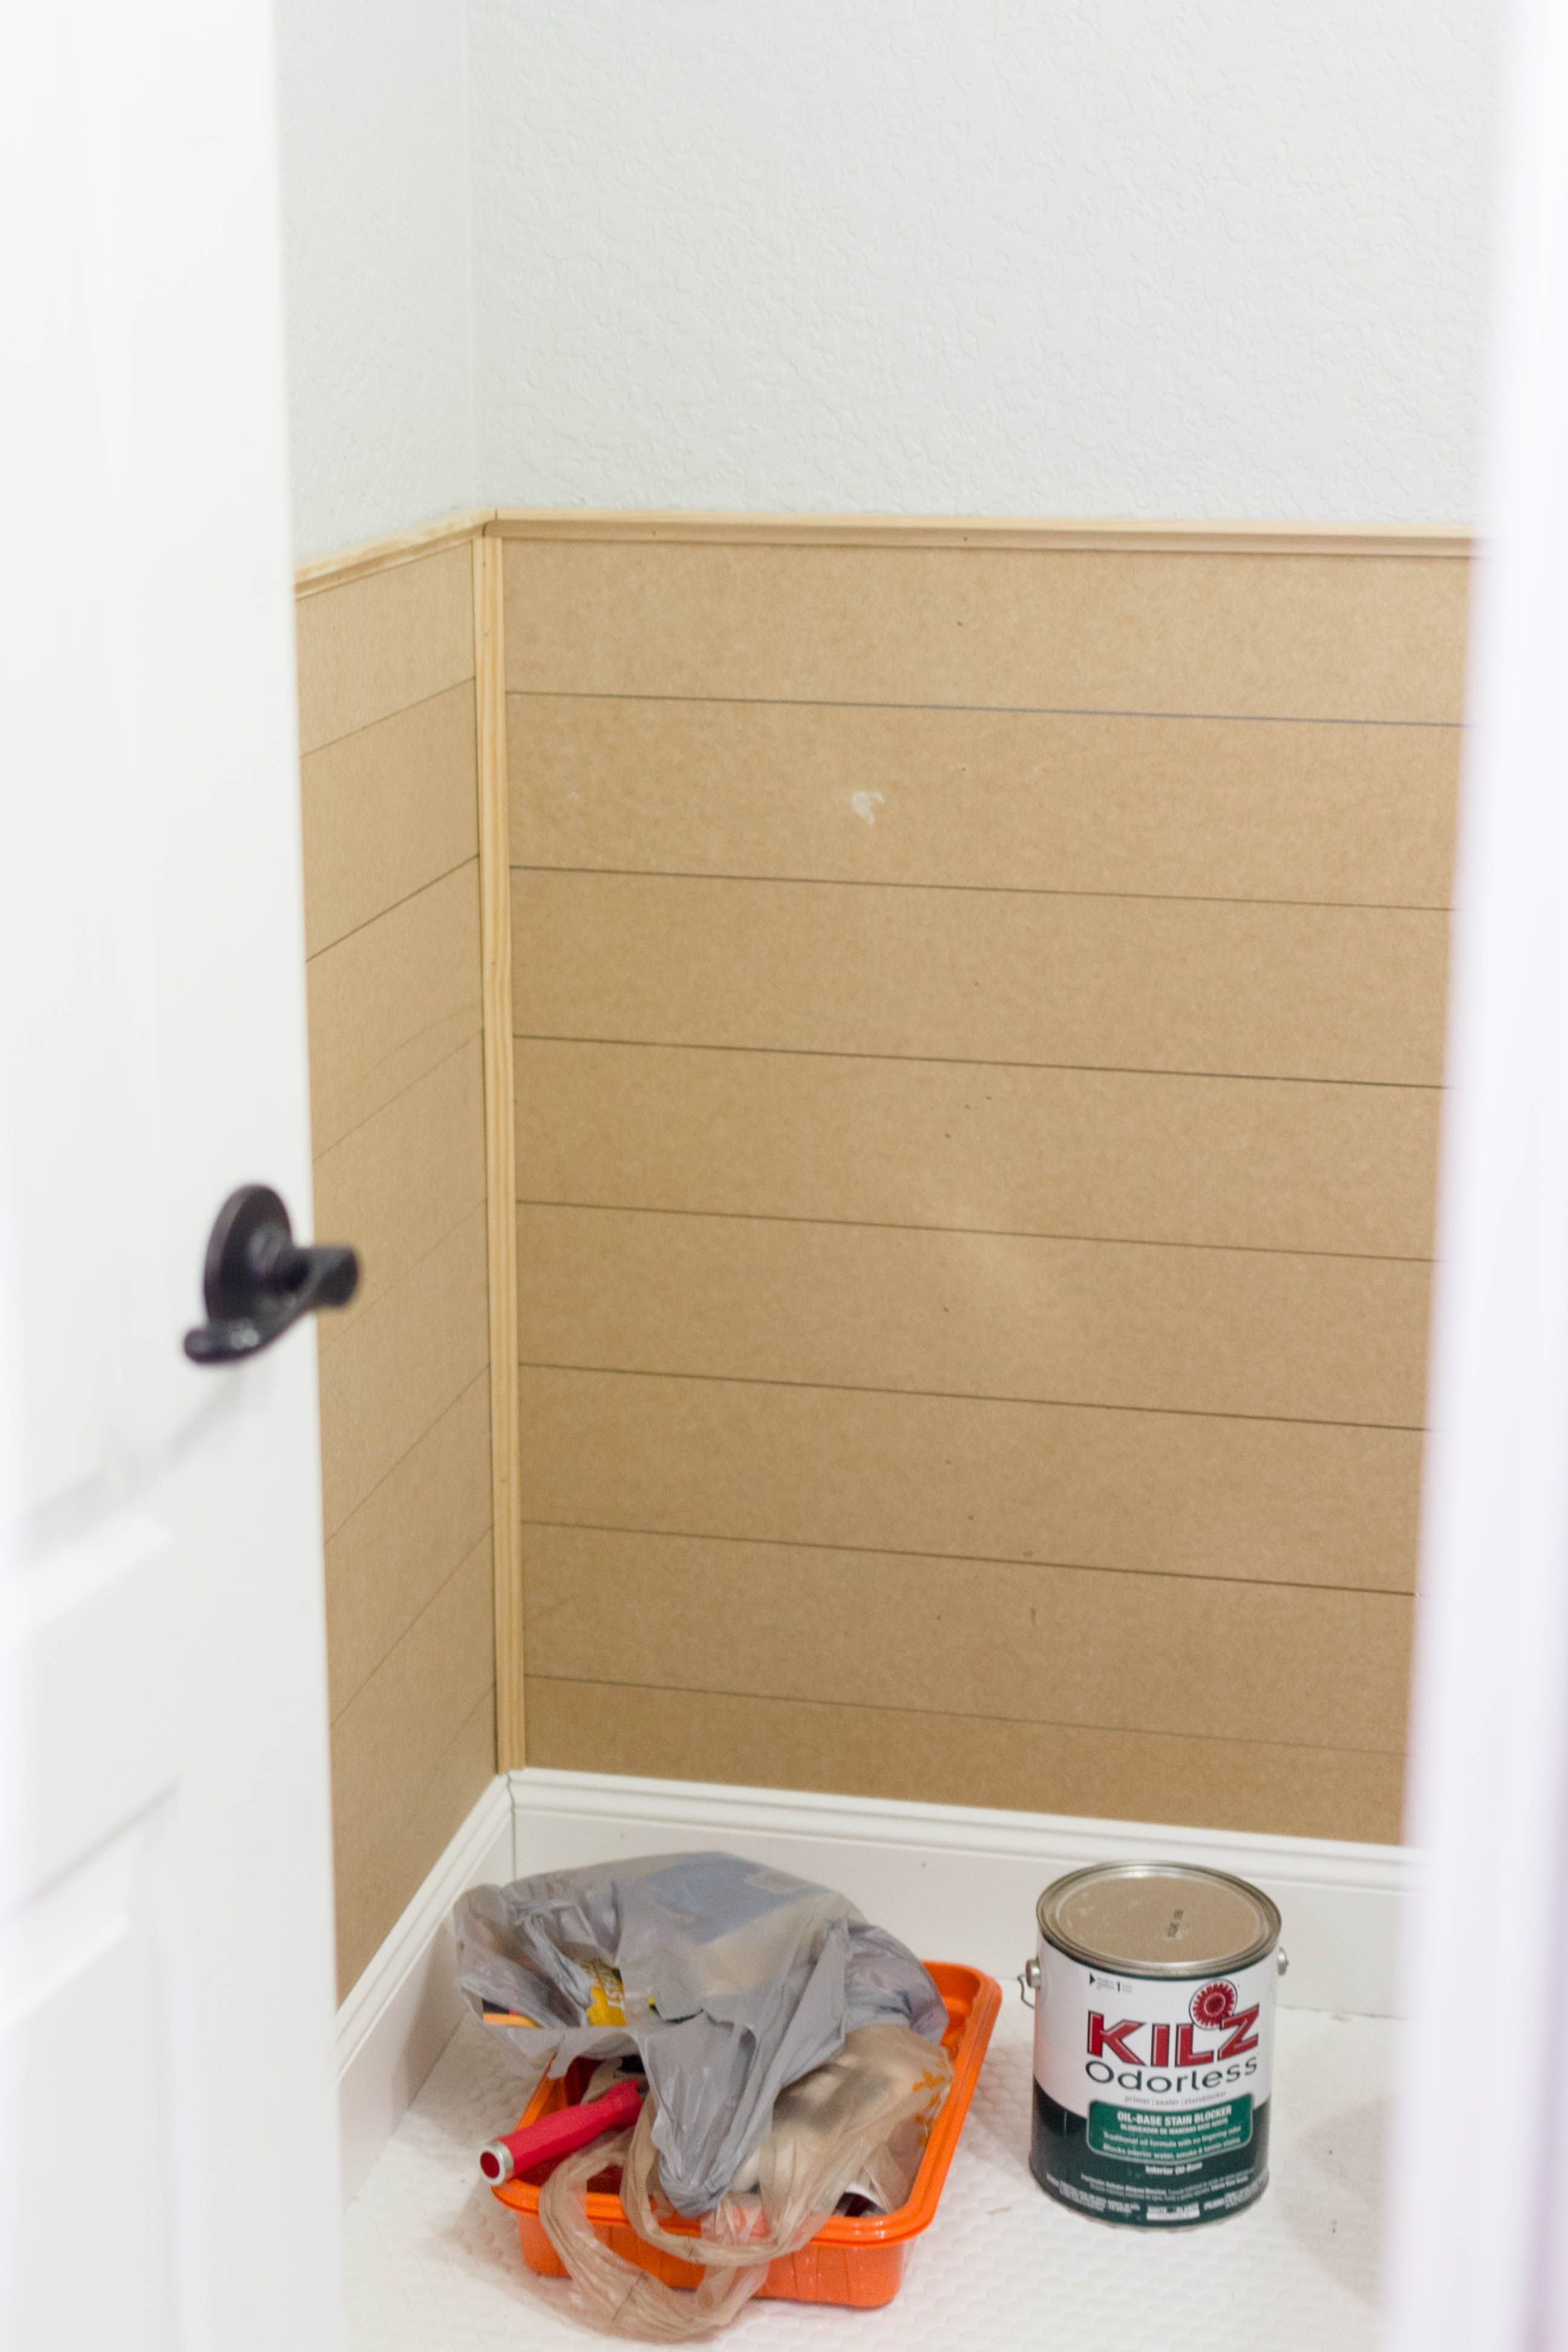 Color Benjamin Moore White Dove Oc 17 Faux Shiplap 25 Mdf Panels Cut Down 5 Powder Room 4 Built In